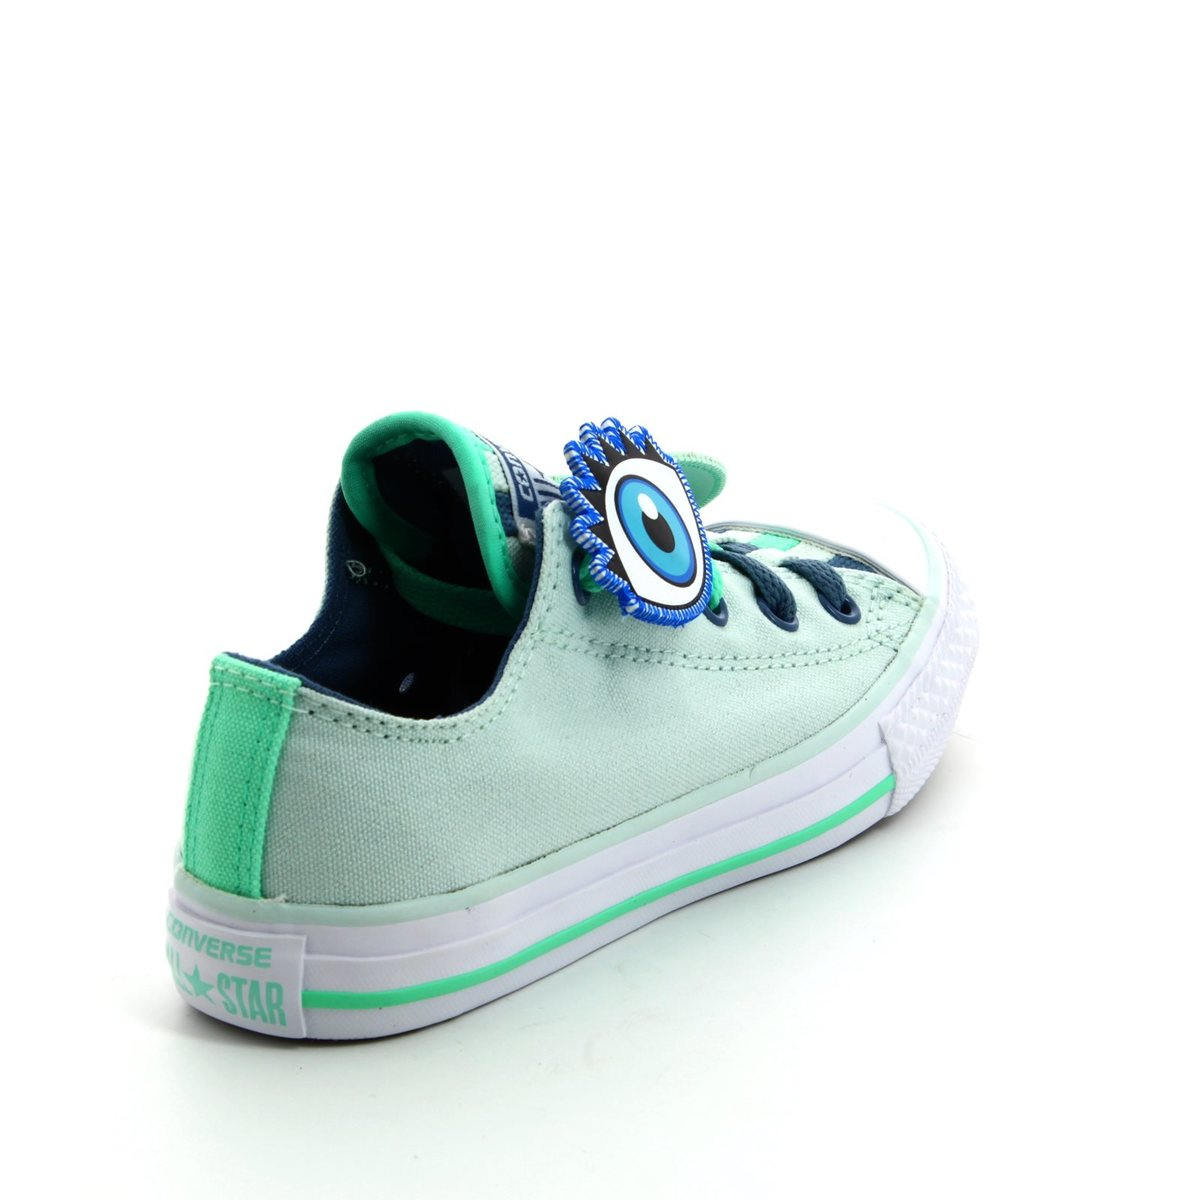 28fcbc63c167 Converse Trainers - Green multi - 656043C Chuck Taylor All Star Loopholes OX